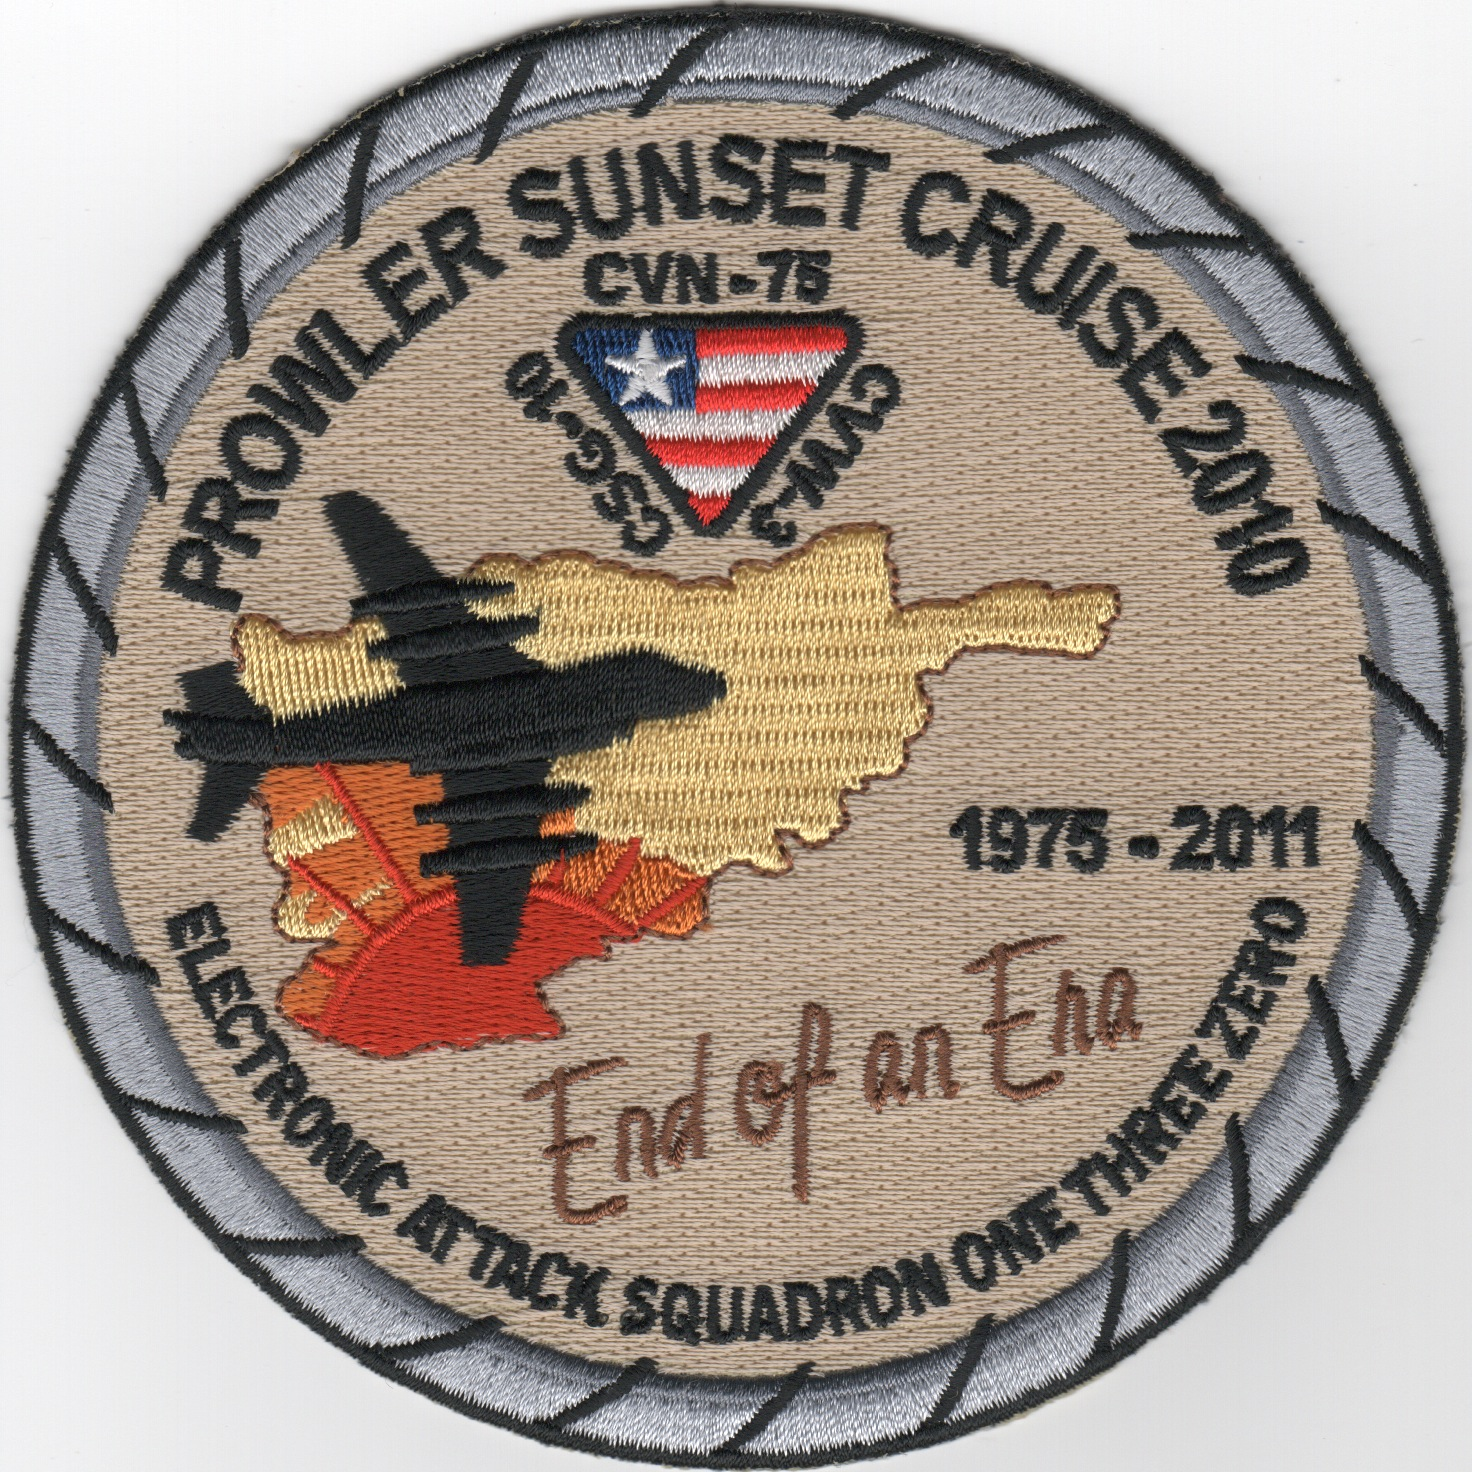 VAQ-130 '2010 Sunset Cruise' Patch